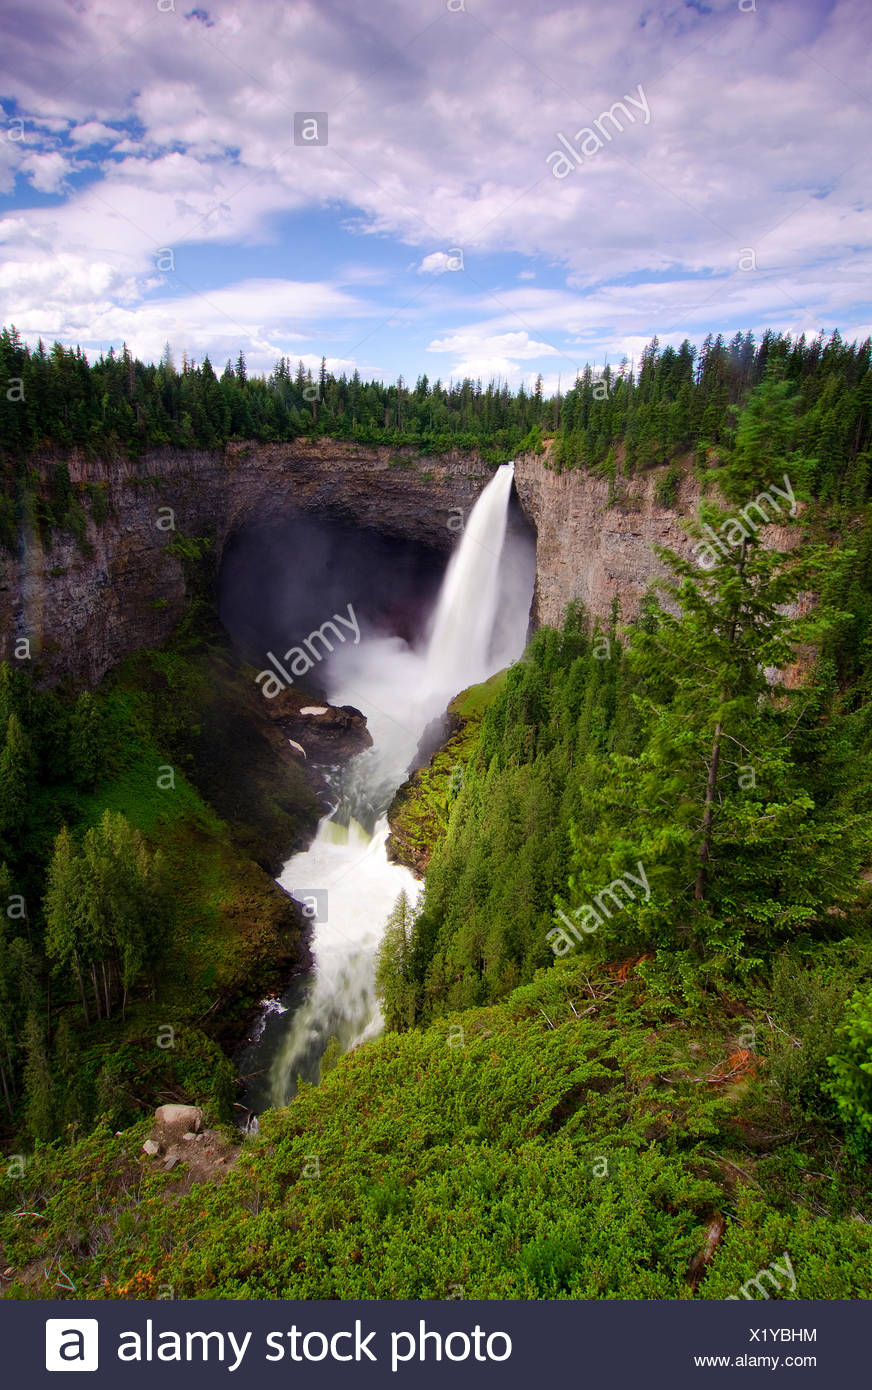 Classic view of Helcken Falls in Wells Gray Provincial Park, in the Thompson Okanagan region of British Columbia, Canada. - Stock Image